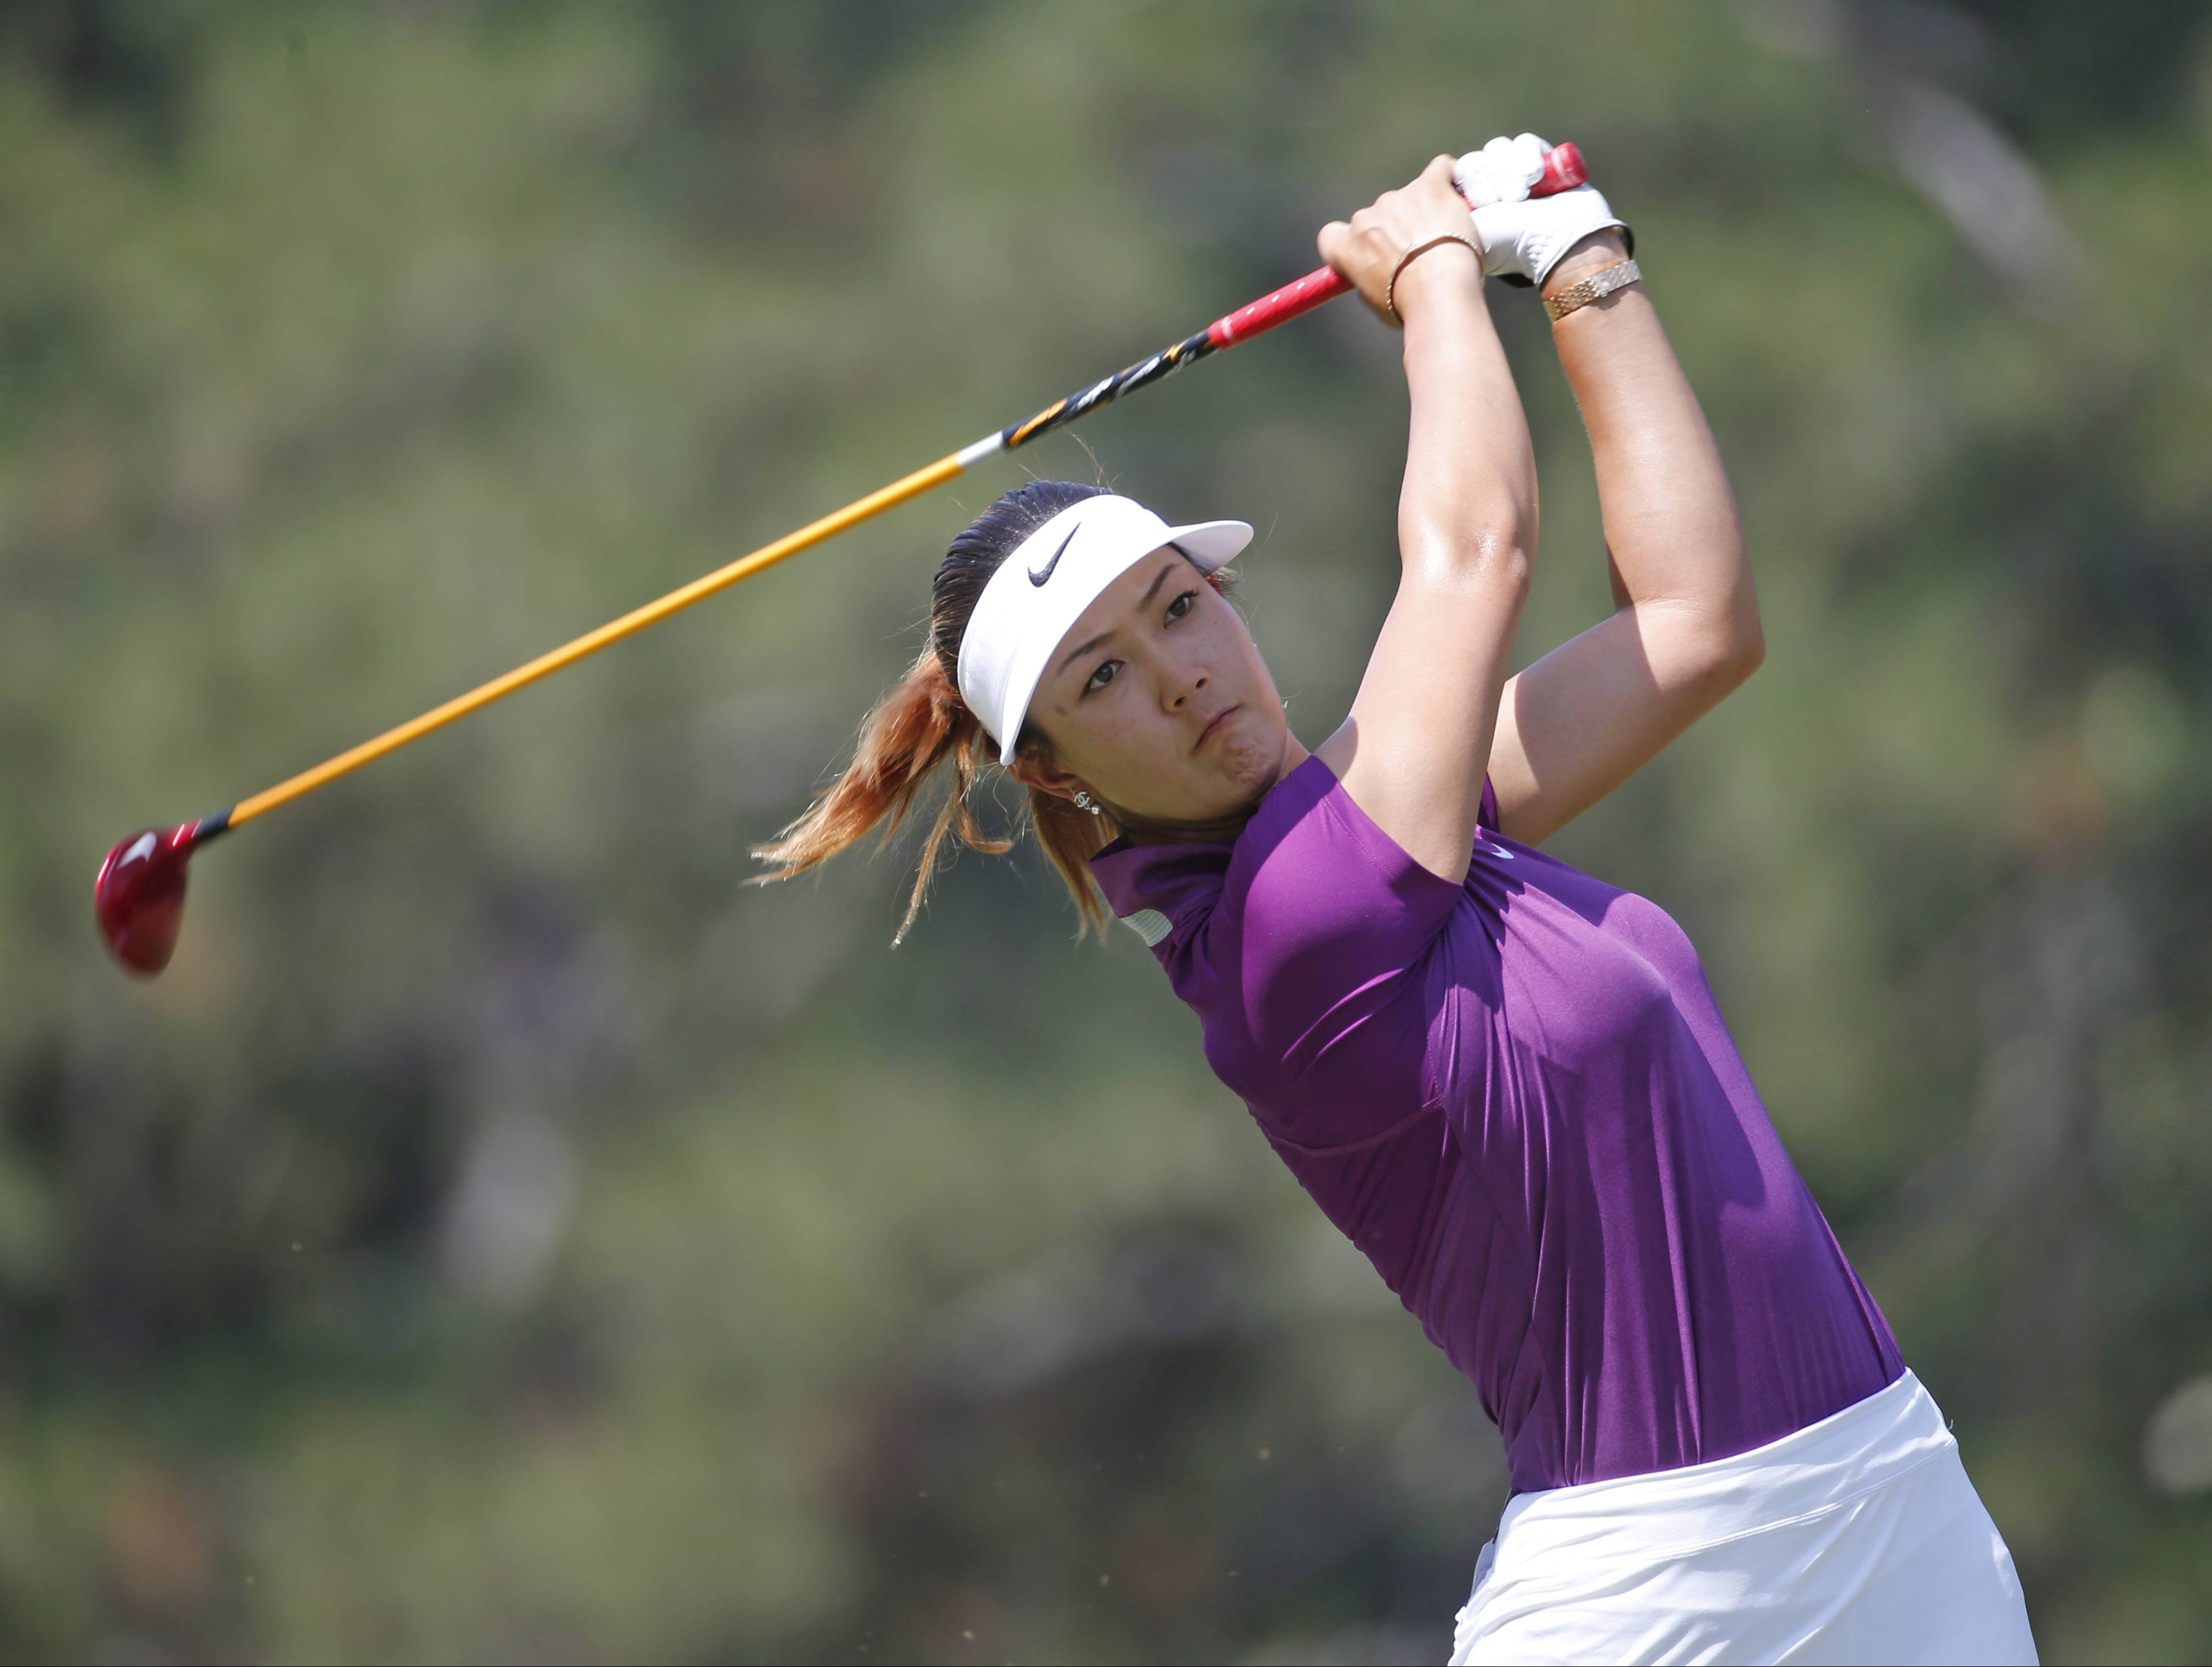 Michelle Wie watches her tee shot  on the second hole during the second round of the U.S. Women's Open golf tournament in Pinehurst, N.C., Friday, June 20, 2014.